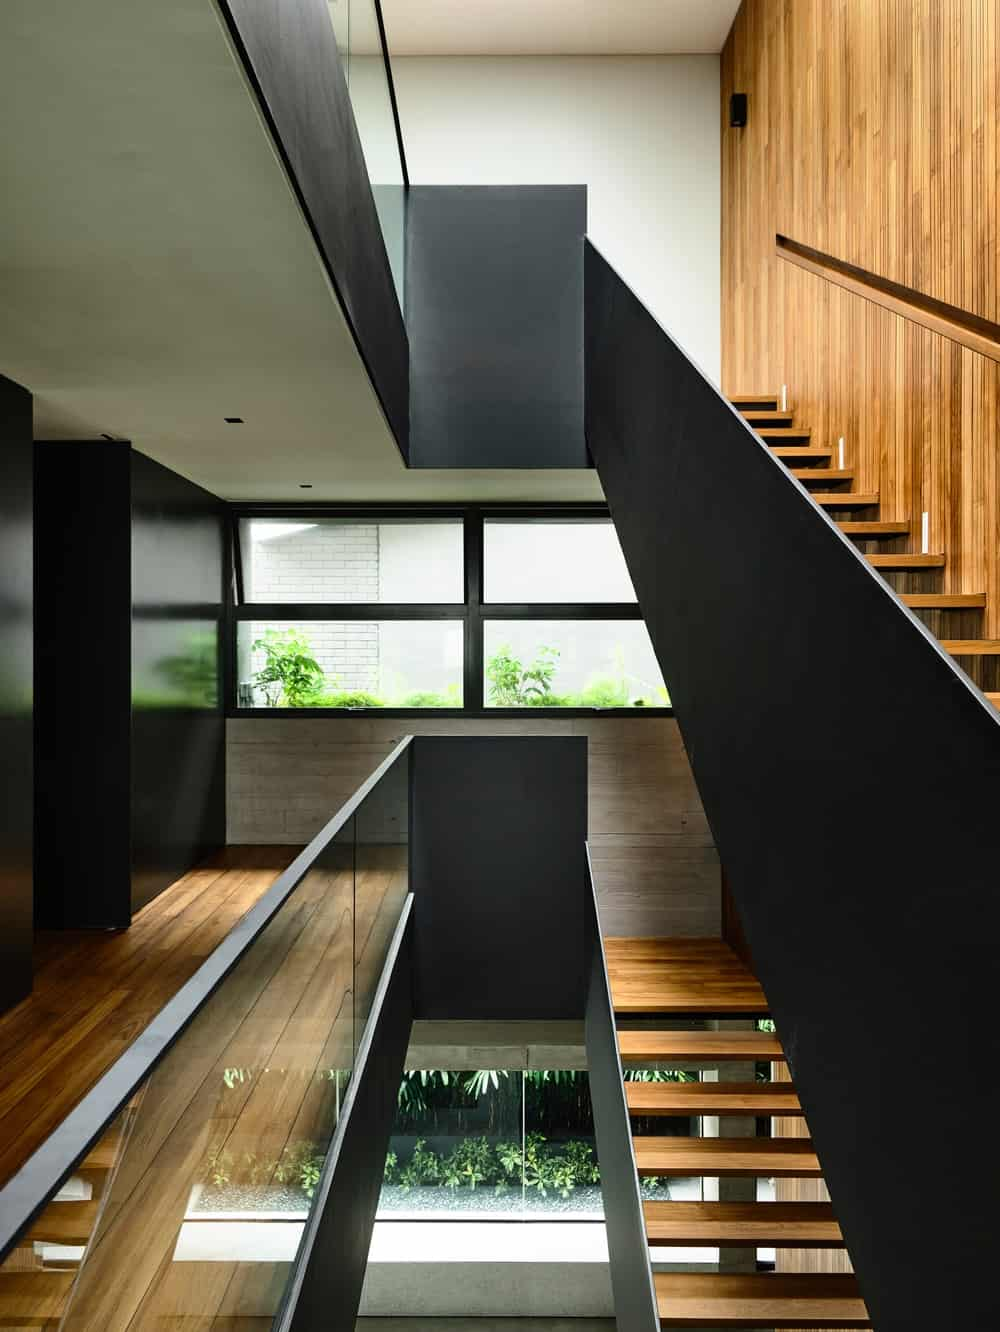 This view of the staircase shows more of the opaque glass railing, black hand rails and wooden steps.